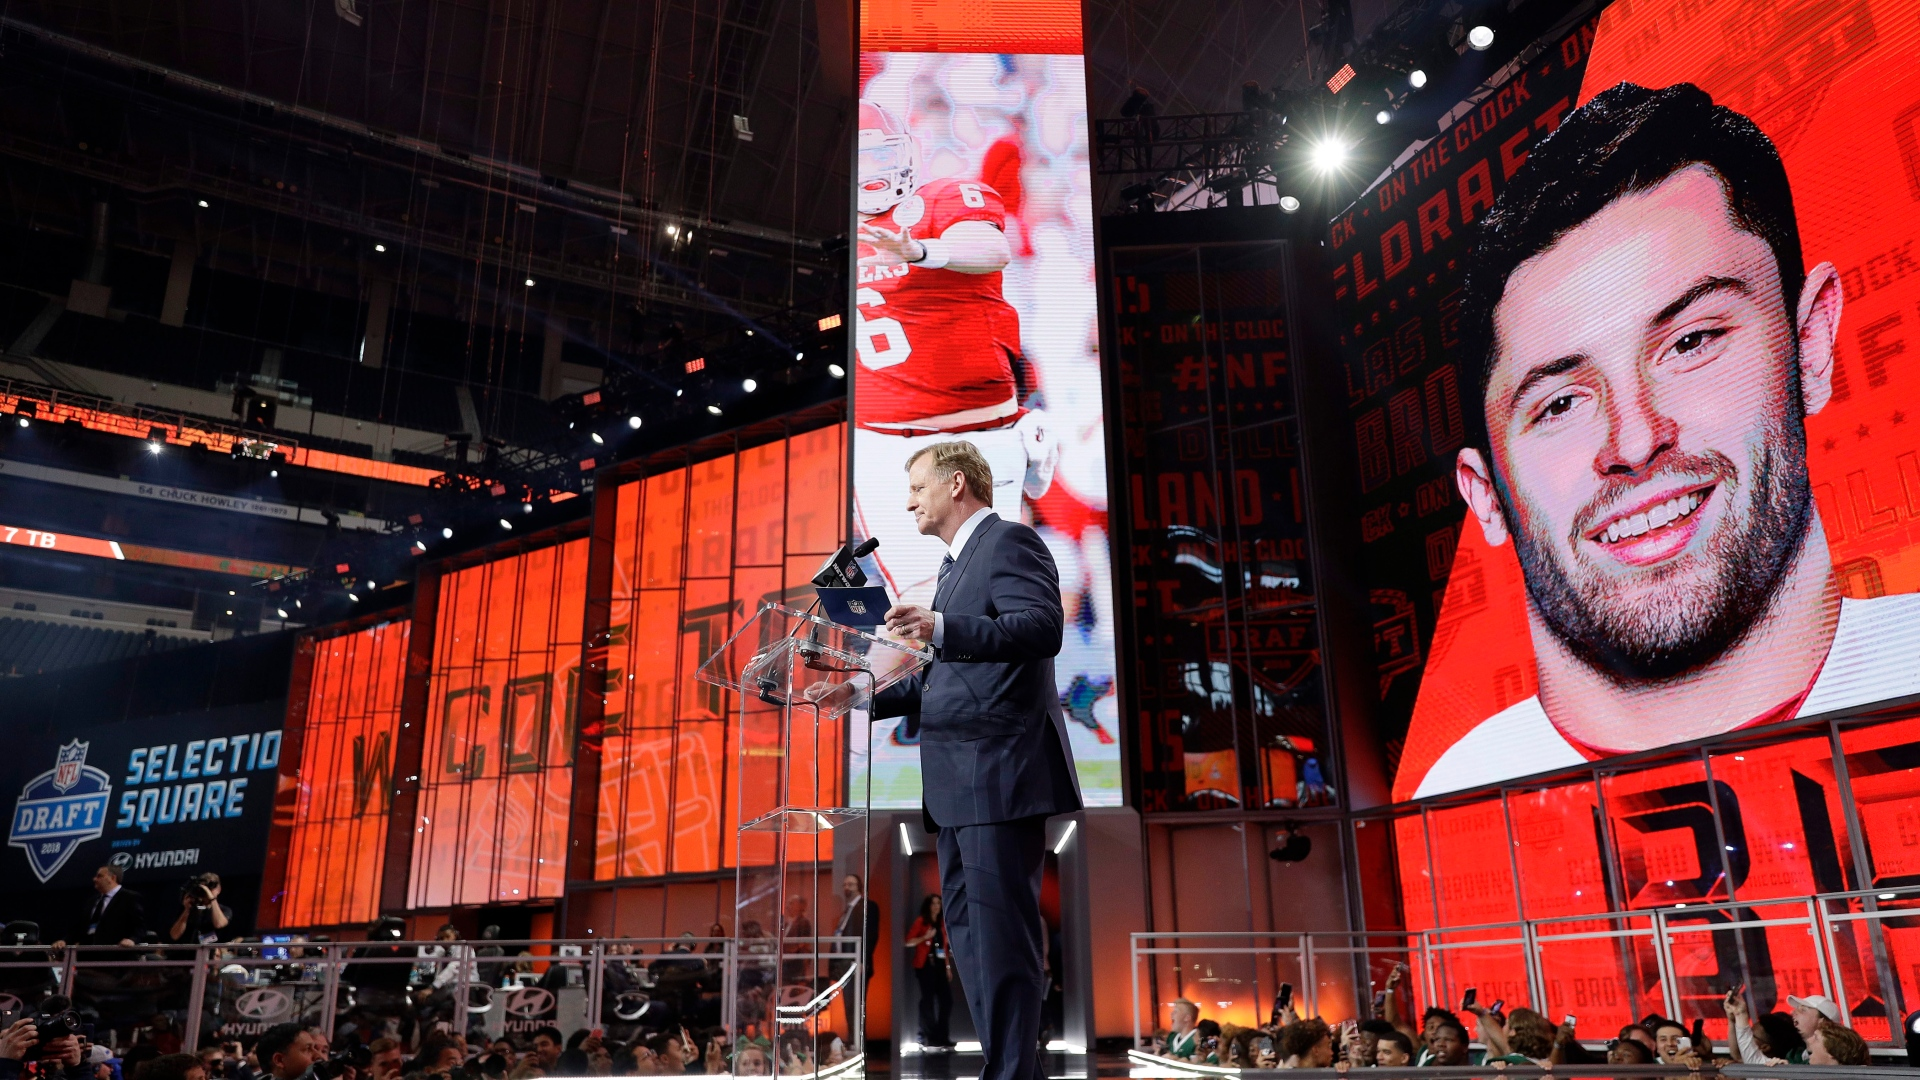 Roger Goodell annonce le choix des Browns, Baker Mayfield